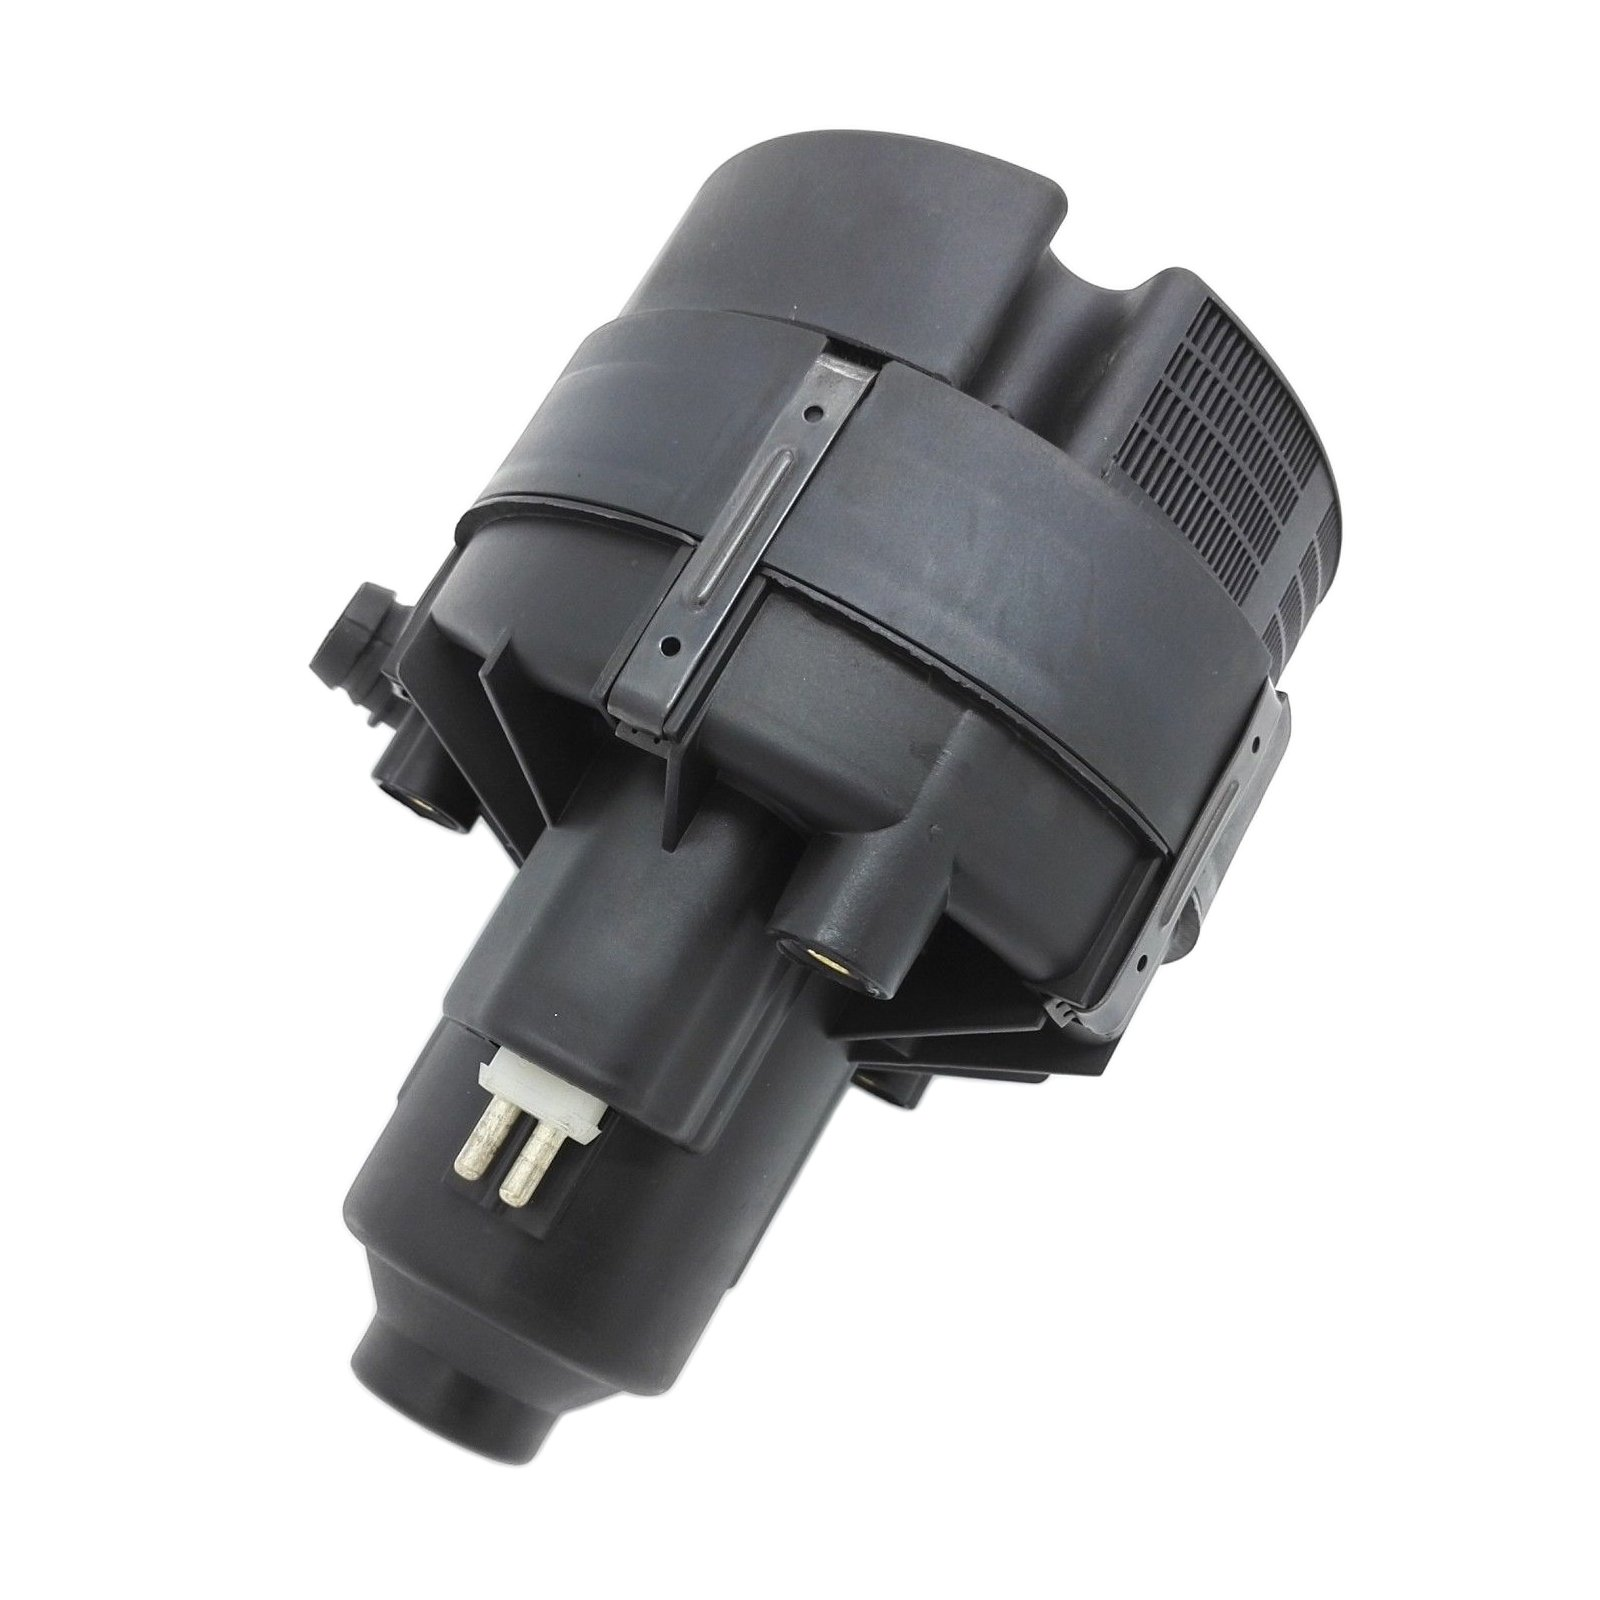 Secondary Air Pump Smog Pump Fits for Audi A6 Quattro S4 A6 Allroad Quattro 2.7 V6 by Nova Parts Sales